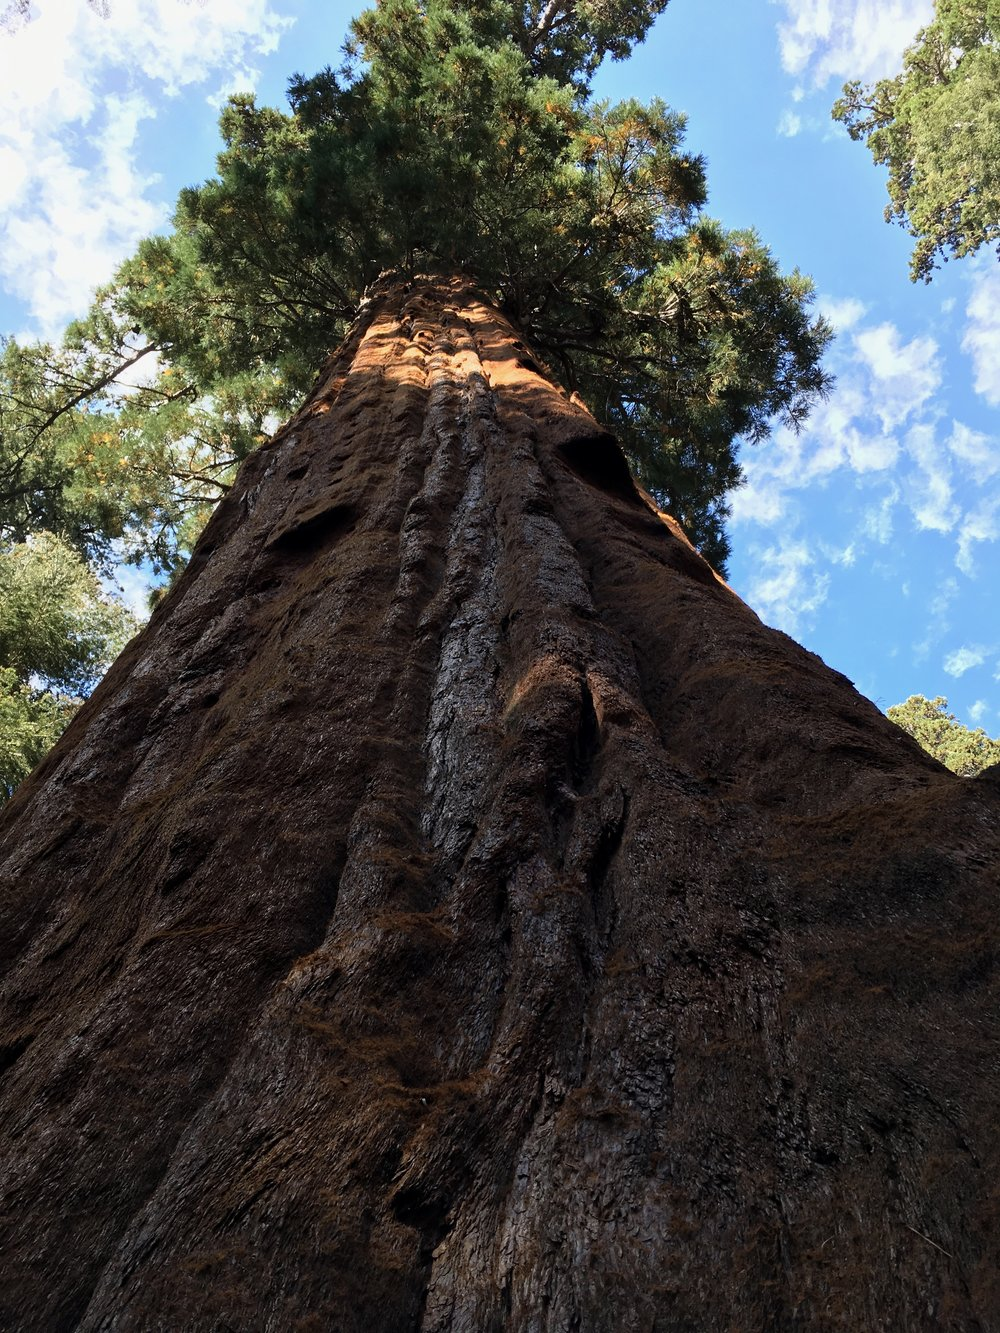 Just as trees grow upward toward the sky, in the body the Wood energy, or Qi, of the Liver also ascends. (From our trip to Sequoia National Park, 2017)